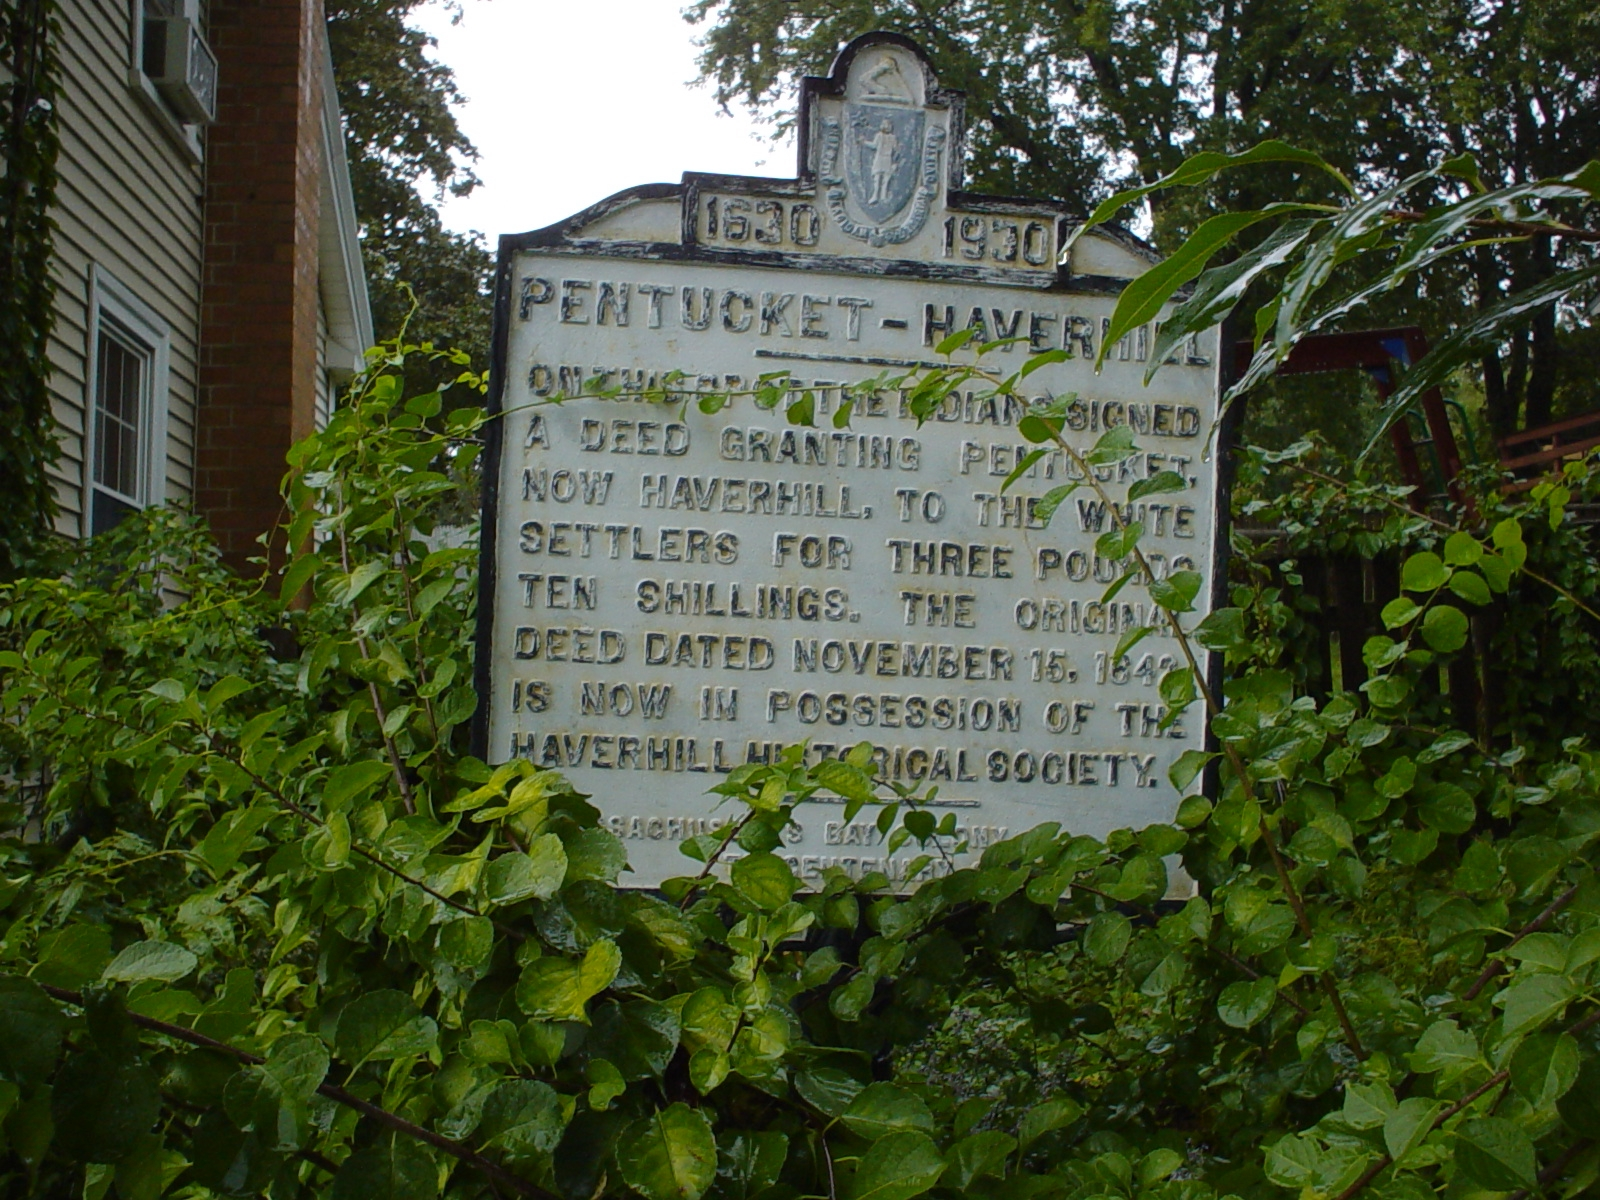 The marker is located on Mill Street opposite the Linwood Cemetery.